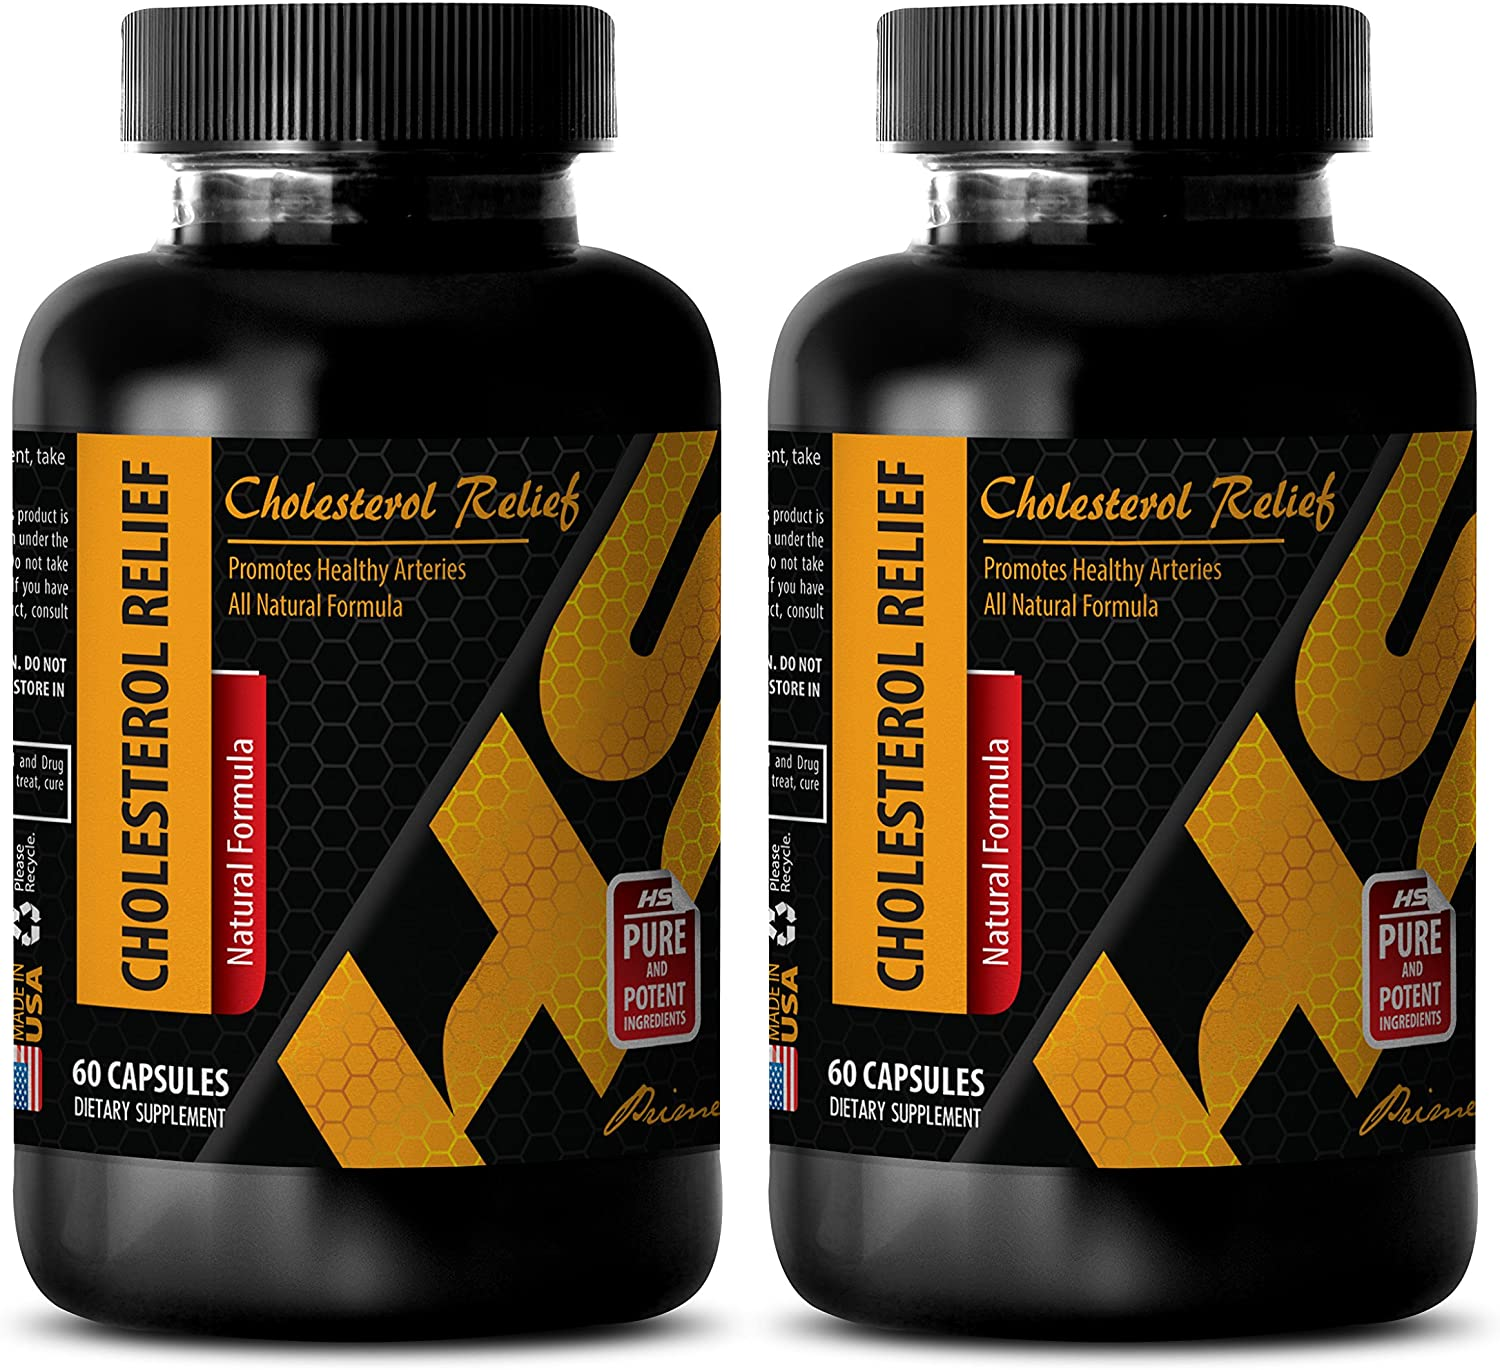 Metabolism Booster for Women - Cholesterol Relief - All Natural Formula - Promotes Healthy Arteries - Cholesterol Now - 2 Bottles (120 Capsules)